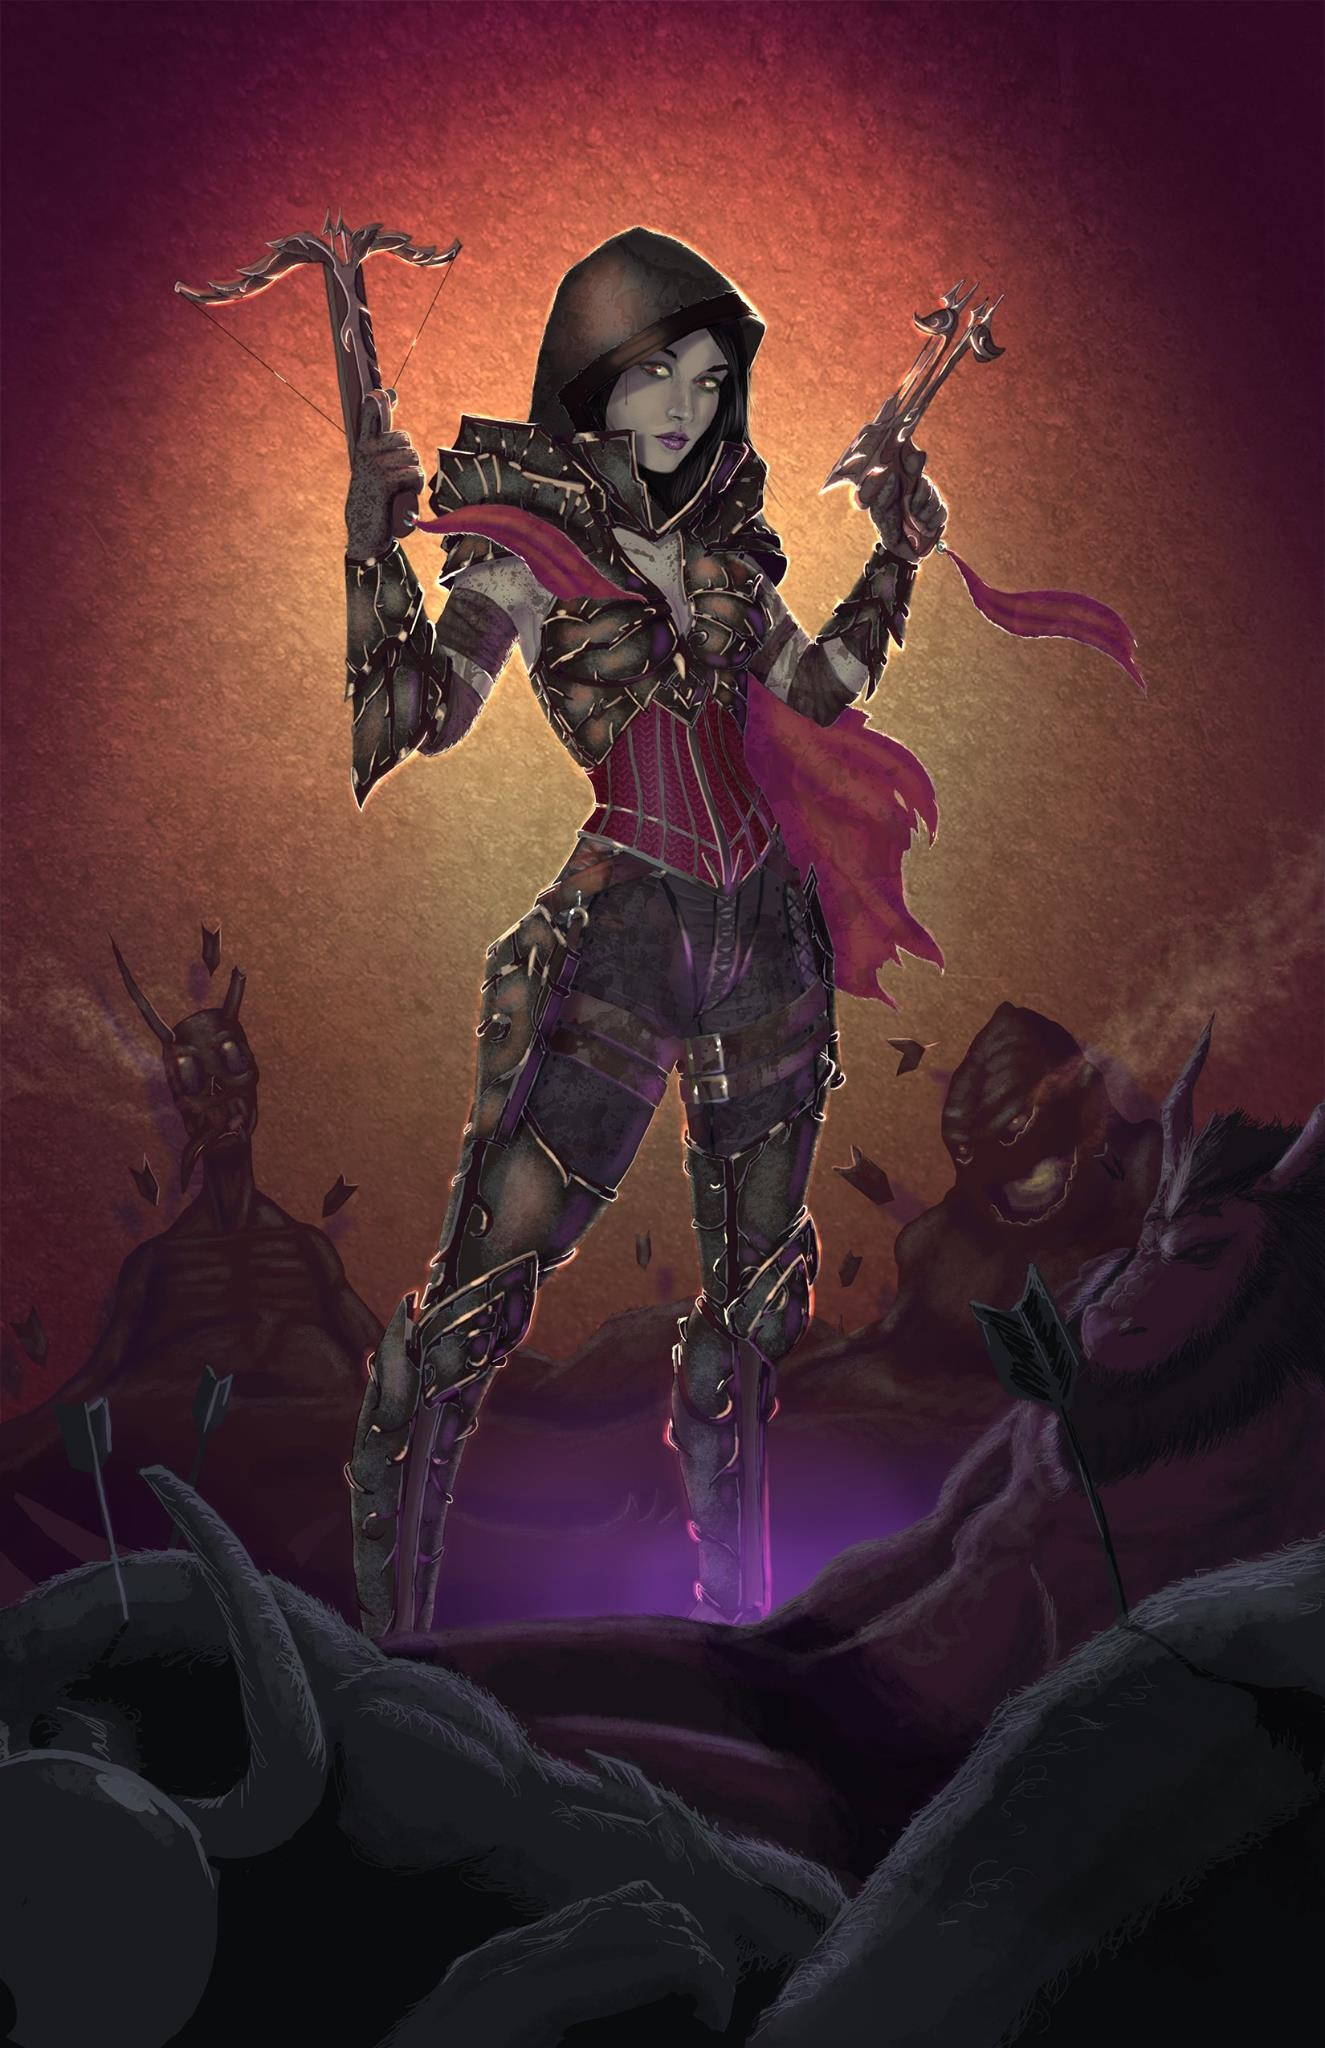 Demon Hunter painting based off of Diablo 3